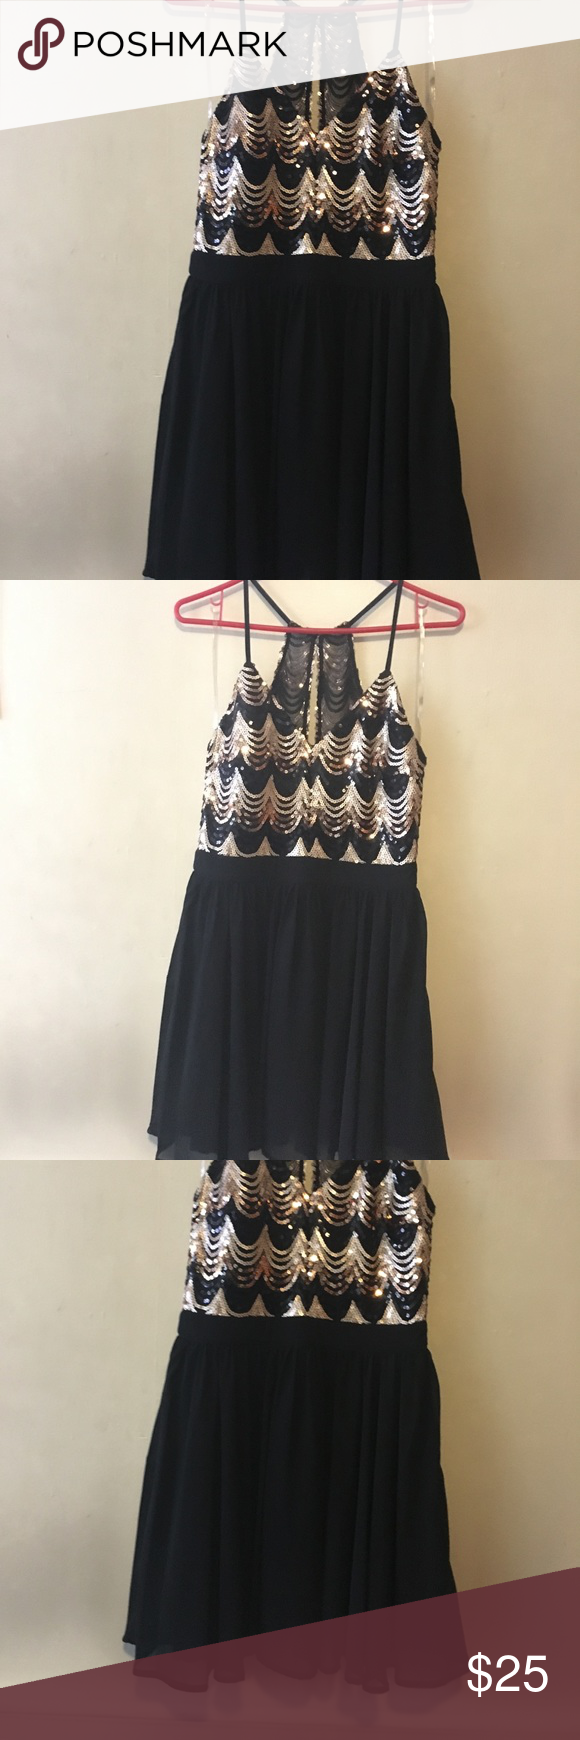 Gold and black sequin dress black sequin dress black sequins and